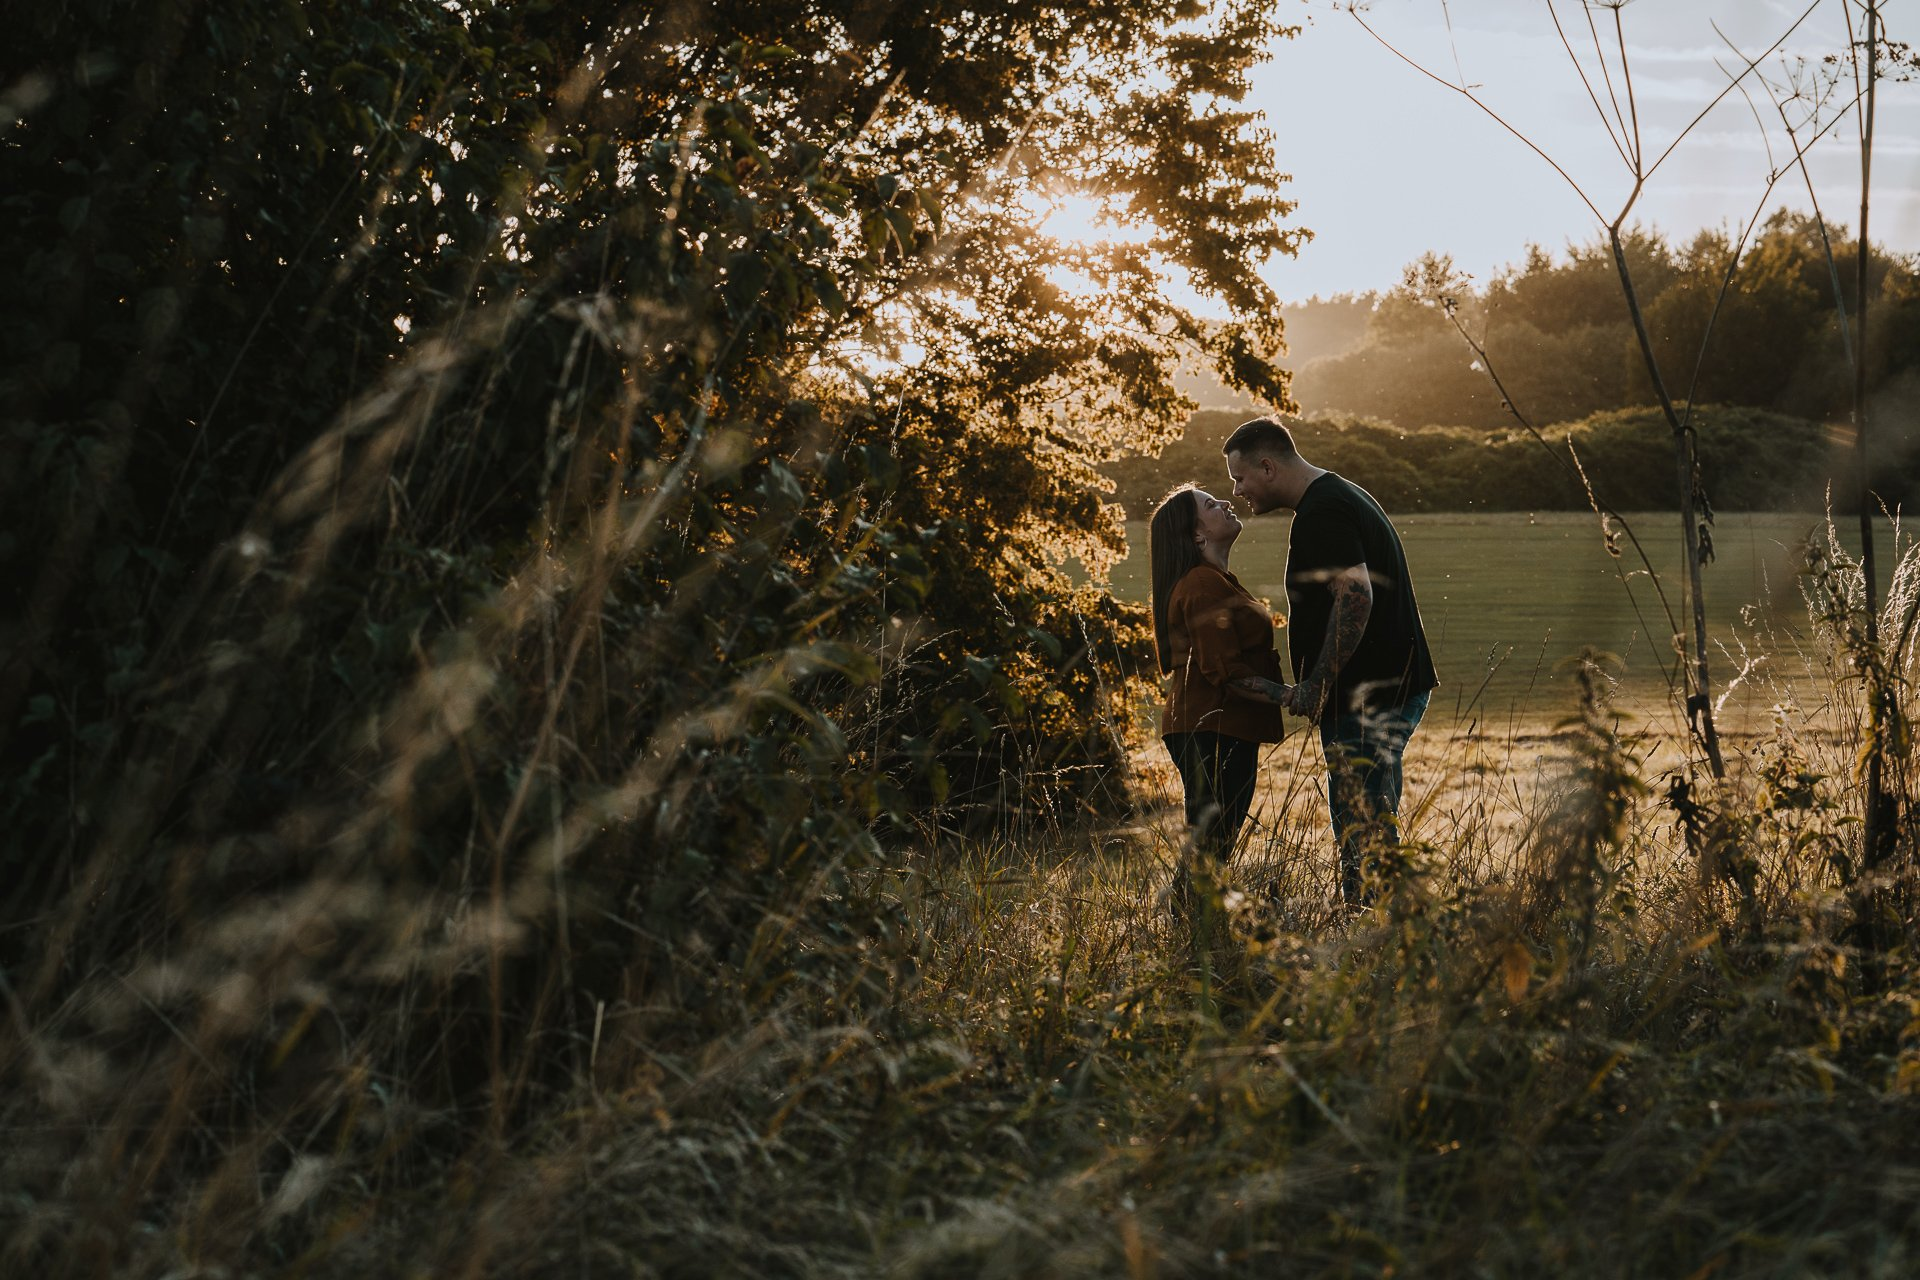 Engaged couple looking at each other during their golden hour couple shoot at Lullingstone Country Park, Kent